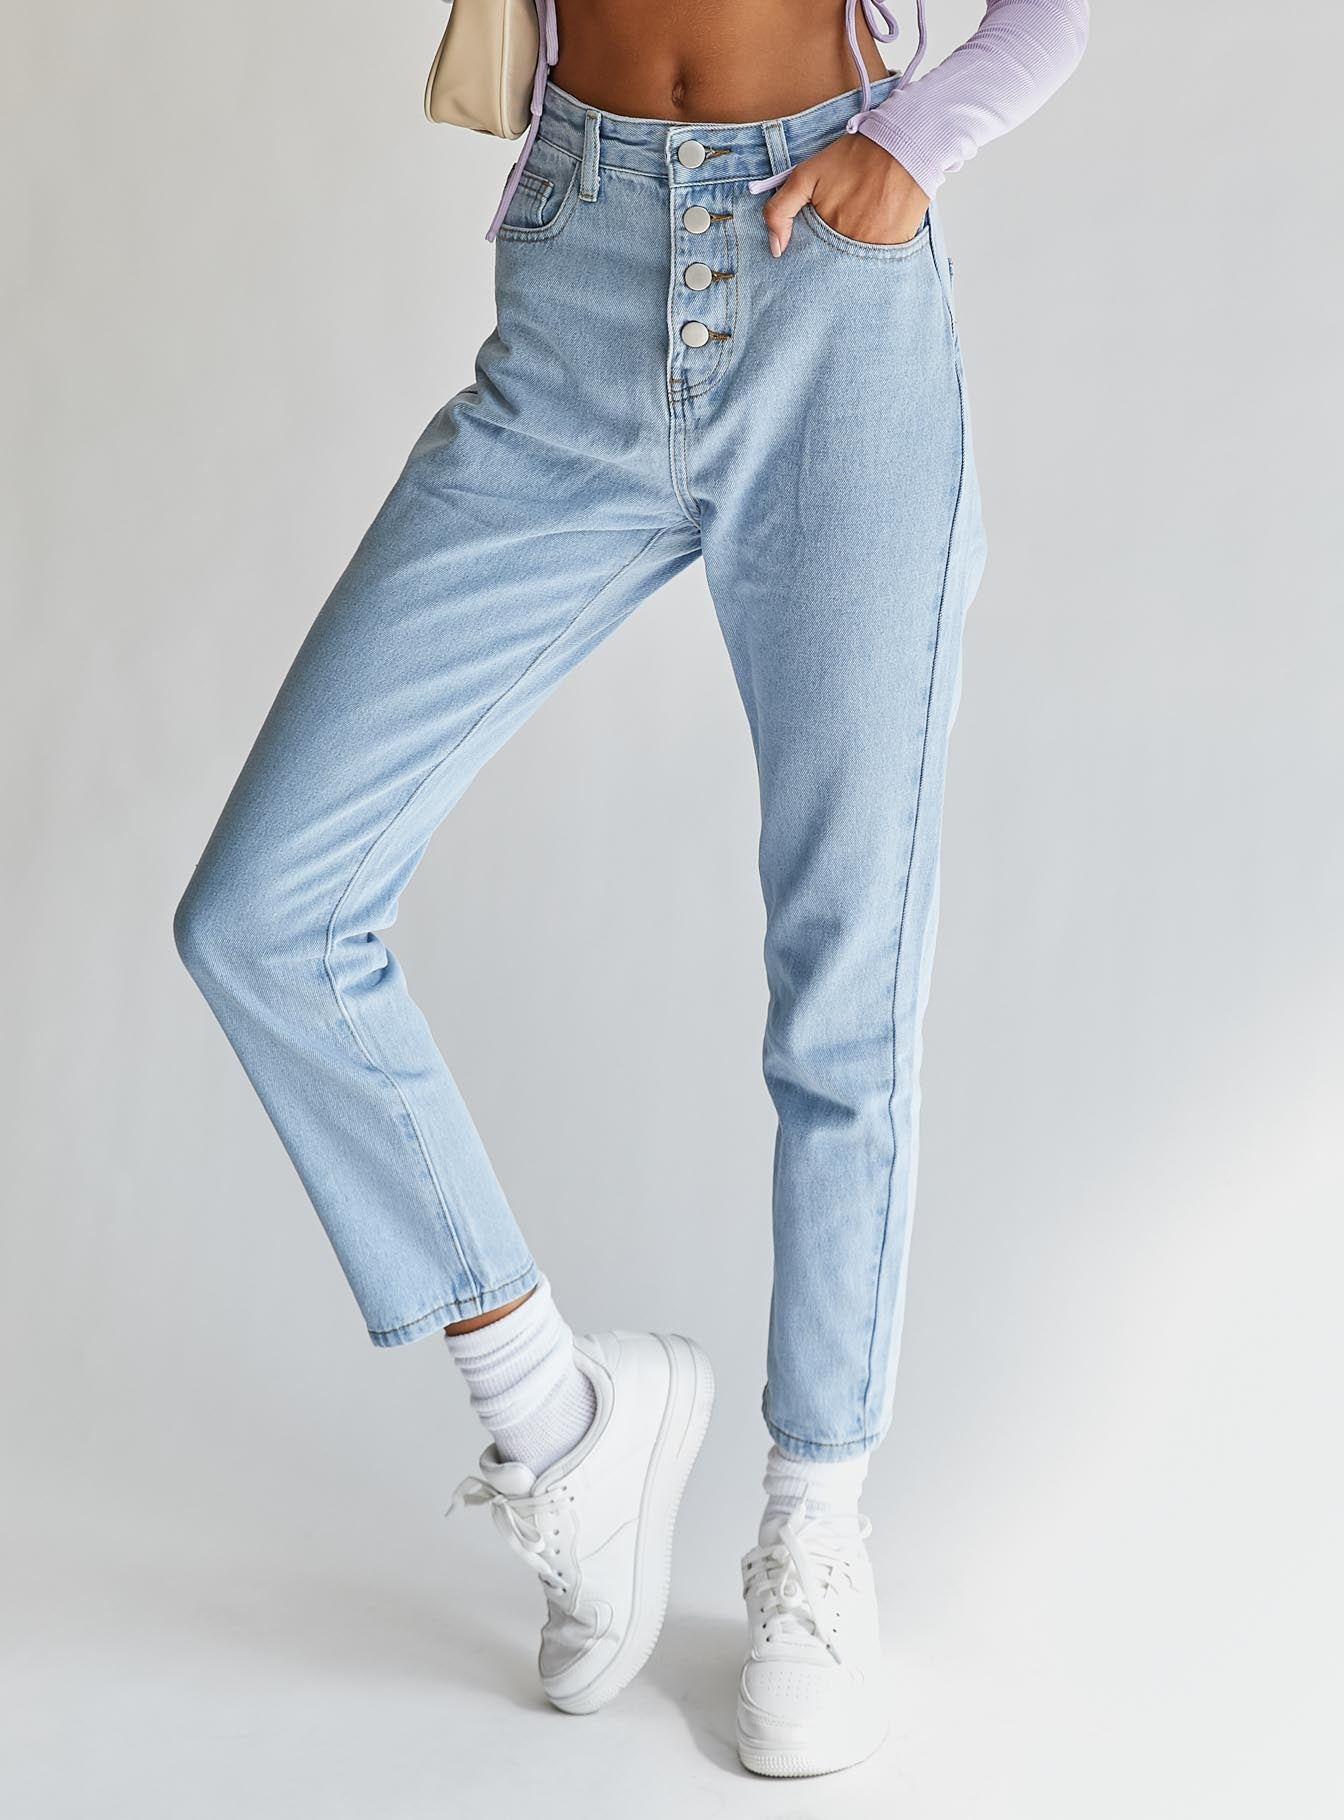 Fall In Line Jeans Light Wash Denim